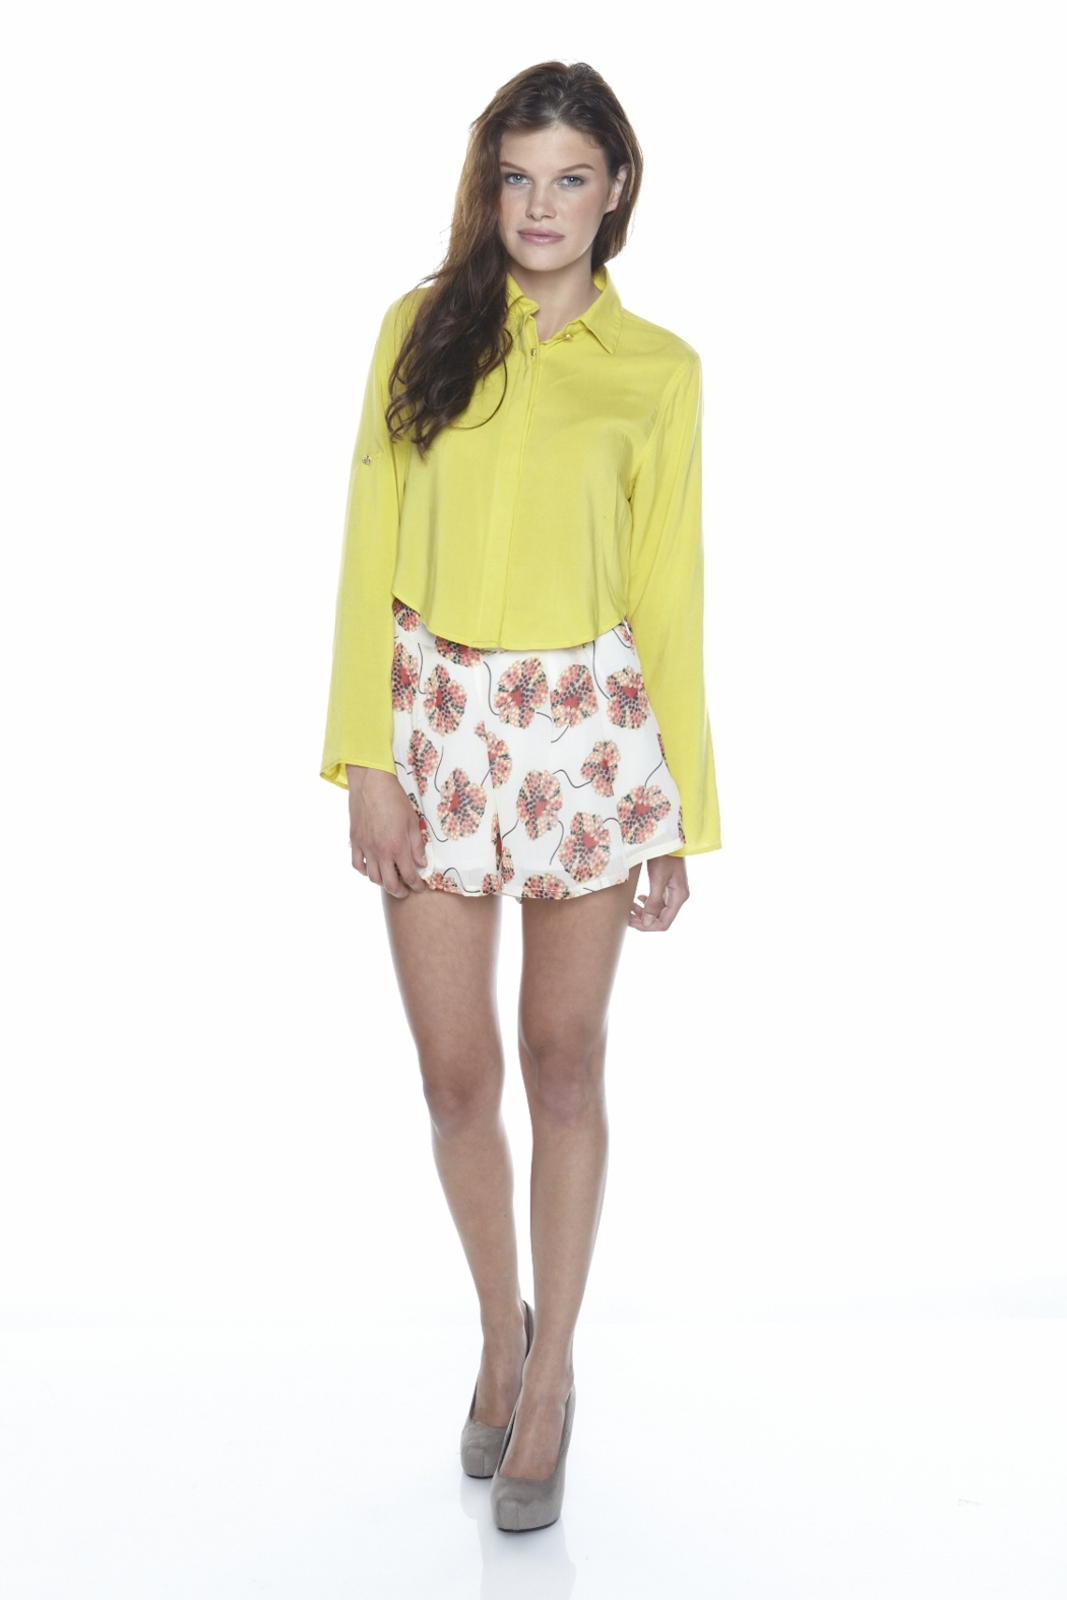 Otis & Maclain Floral High-Waisted Shorts - Front Full Image